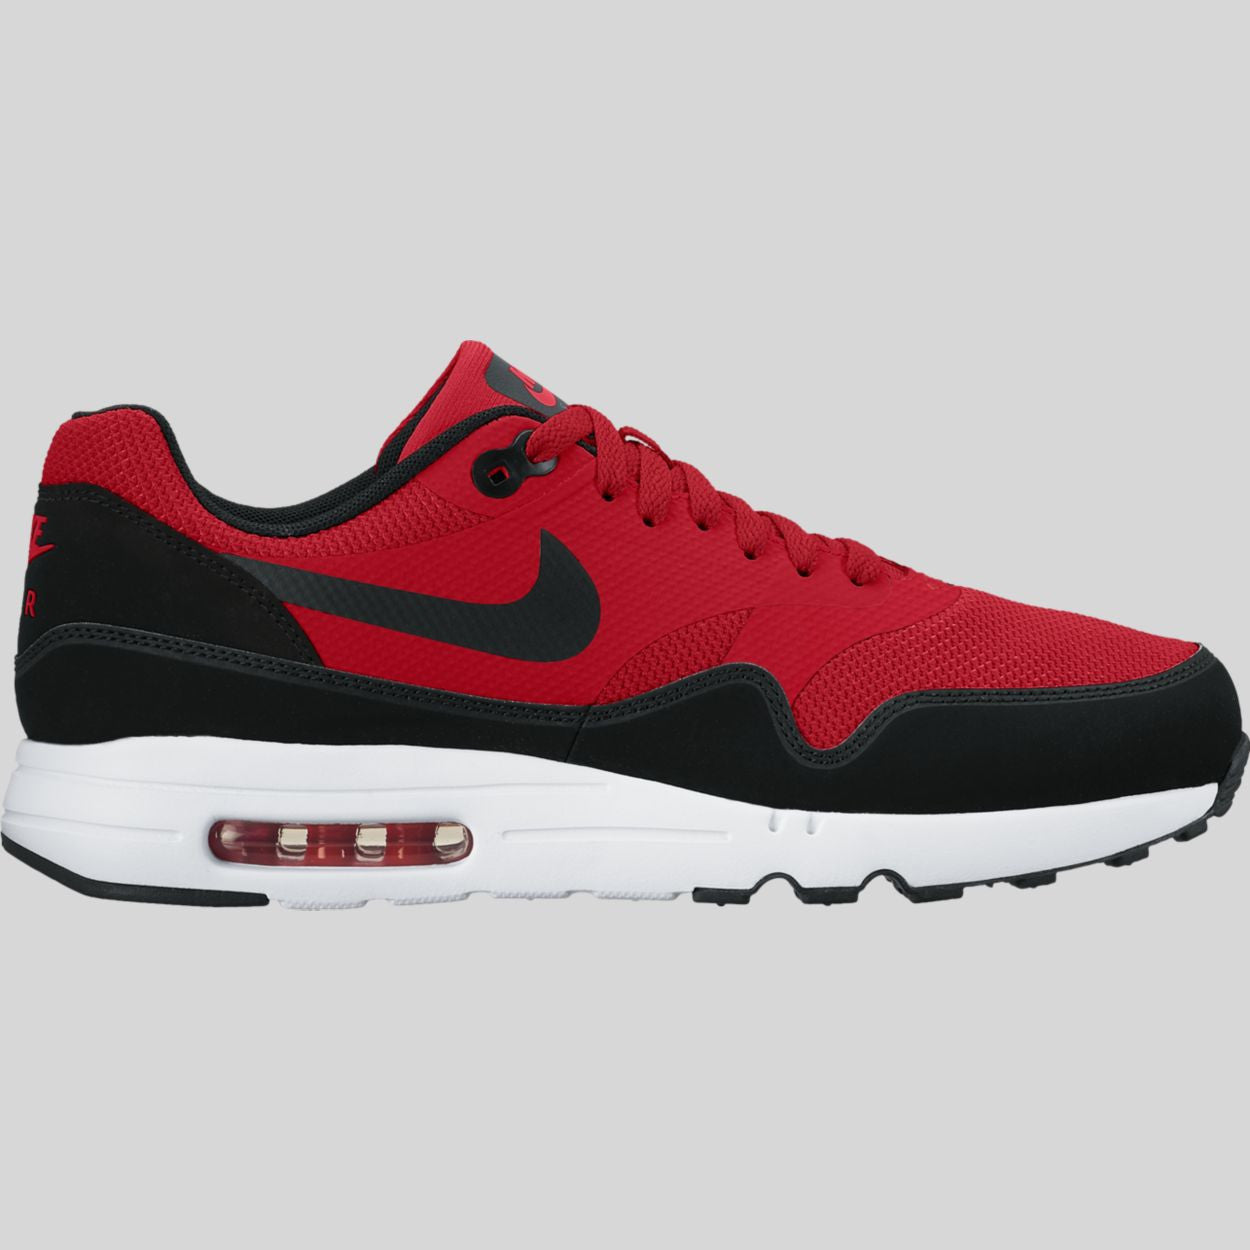 0c0340bb6ae3d8 Nike Air Max 1 Ultra 2.0 Essential University Red Black White (875679-600)